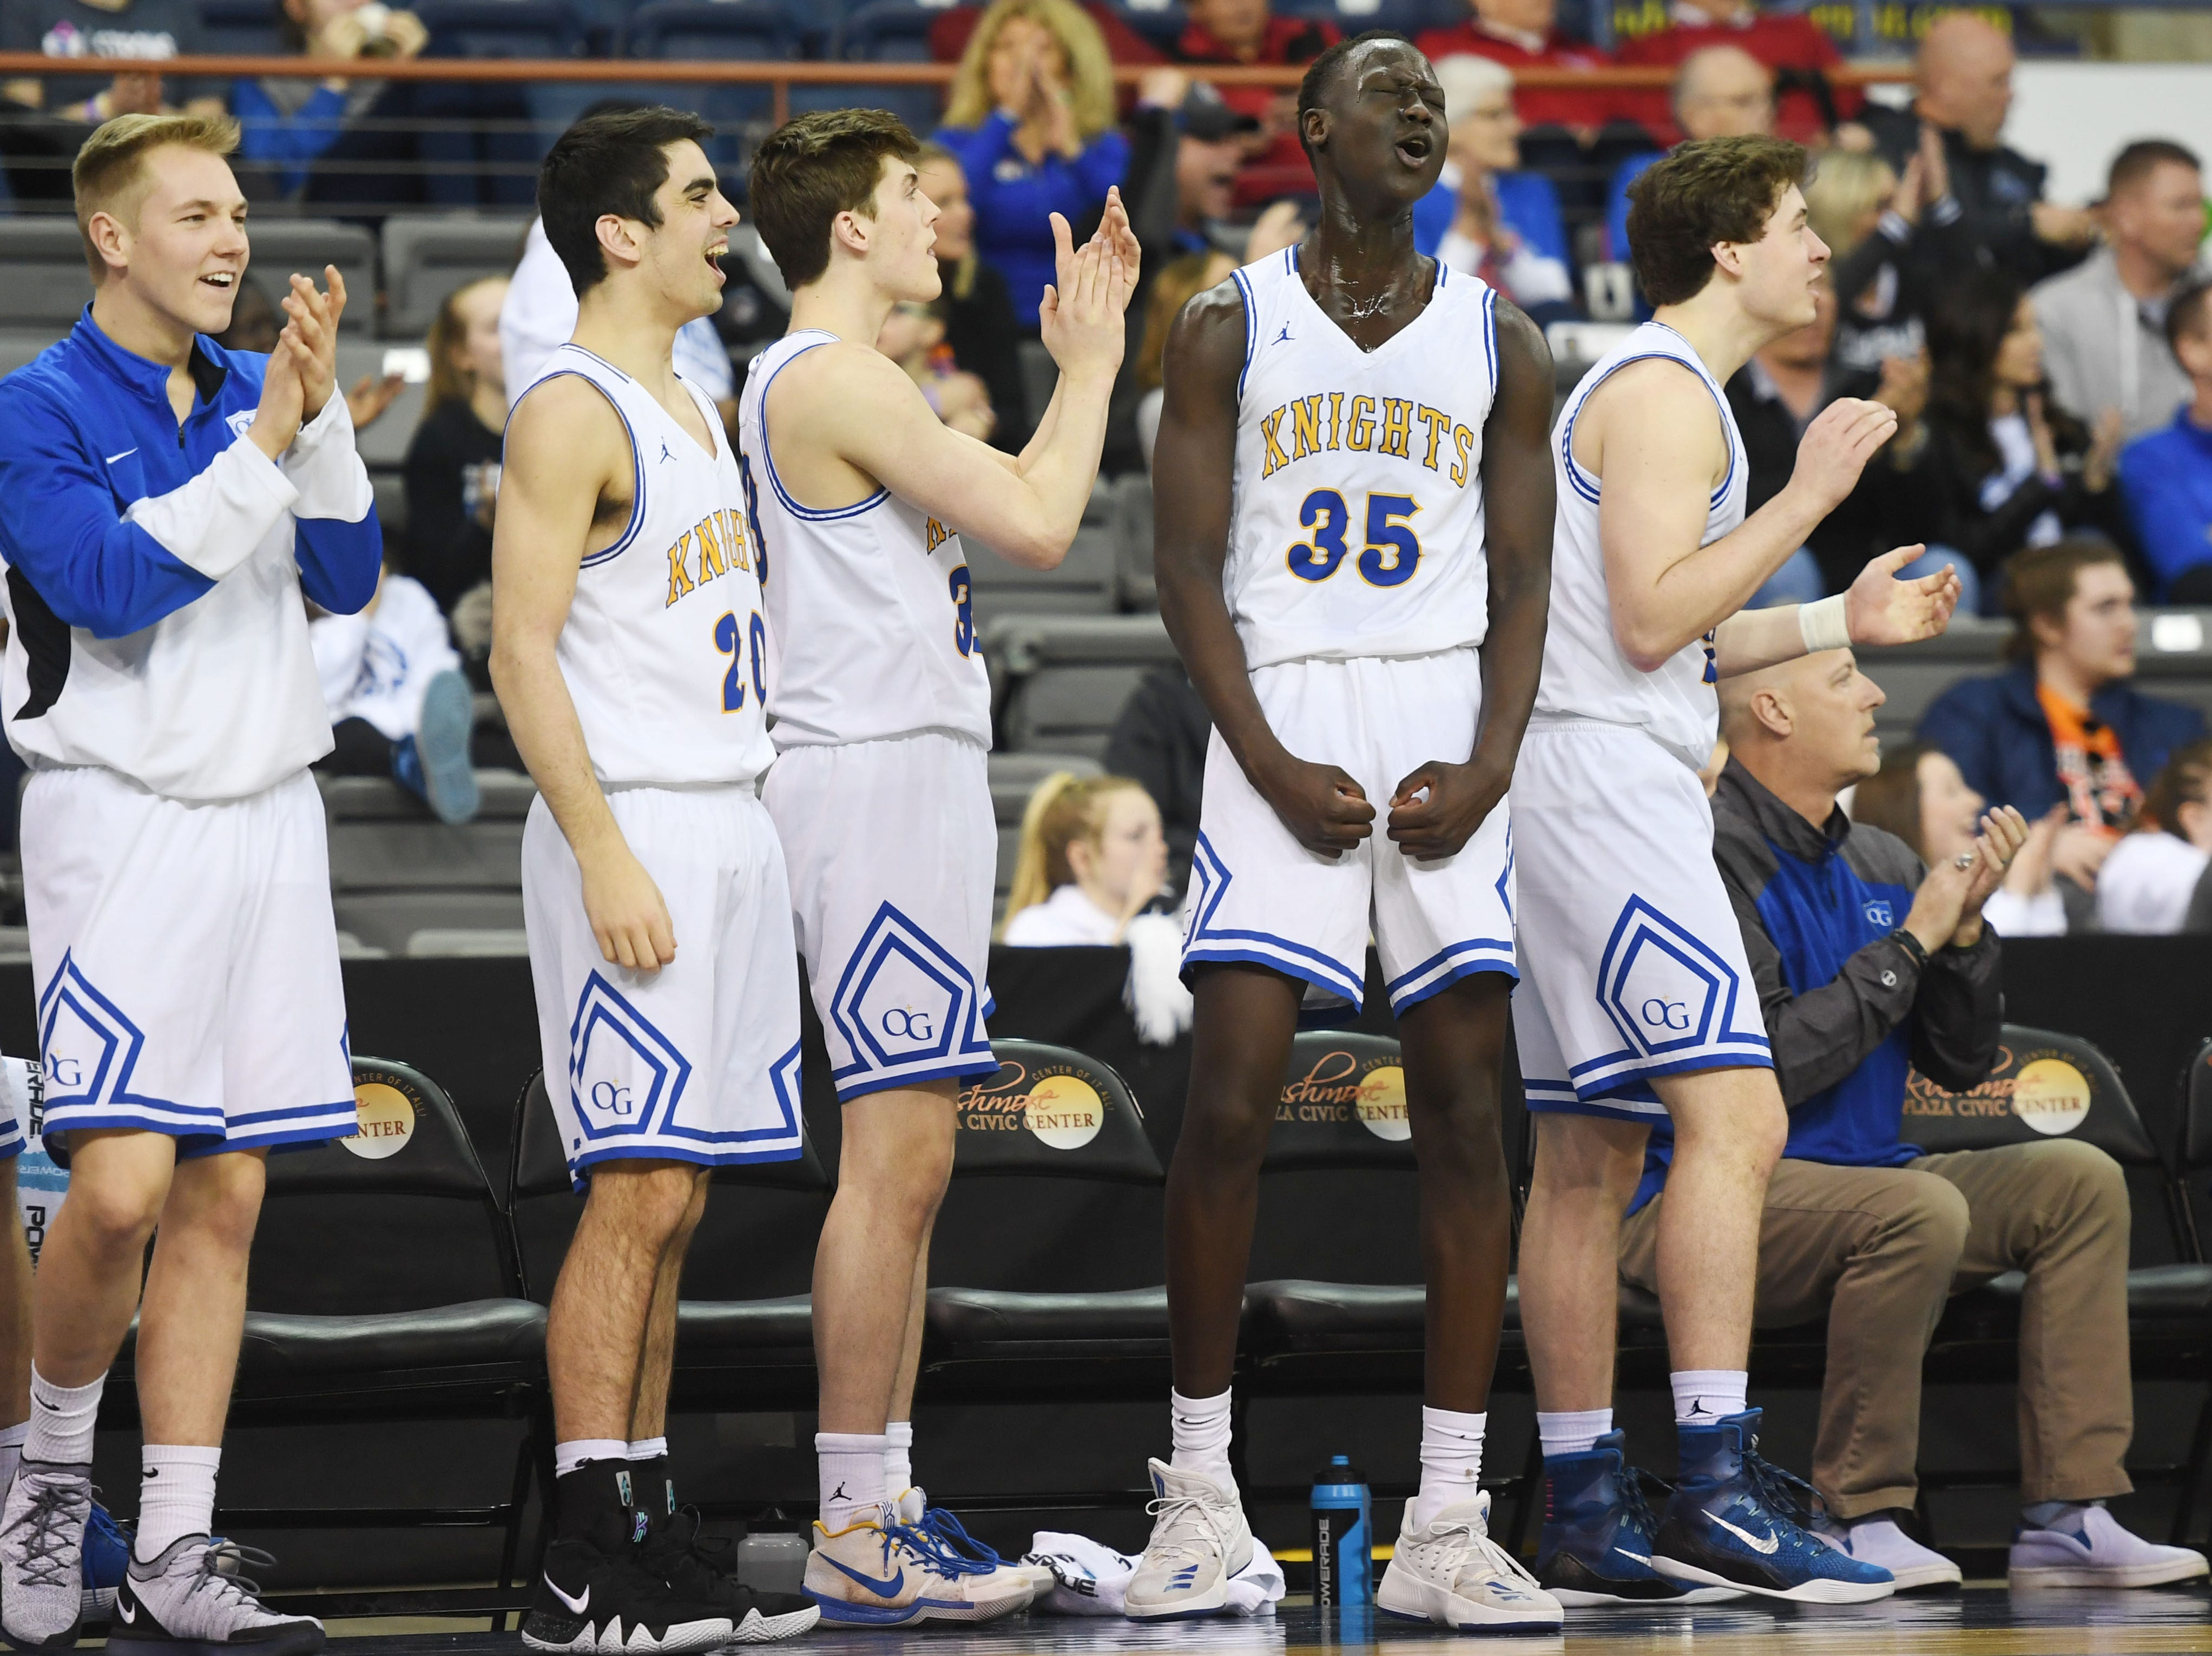 O'Gorman's Akoi Akoi (35) celebrates on the sidelines during the game game against Roosevelt in the Class AA quarterfinals Thursday, March 14, in Rapid City.